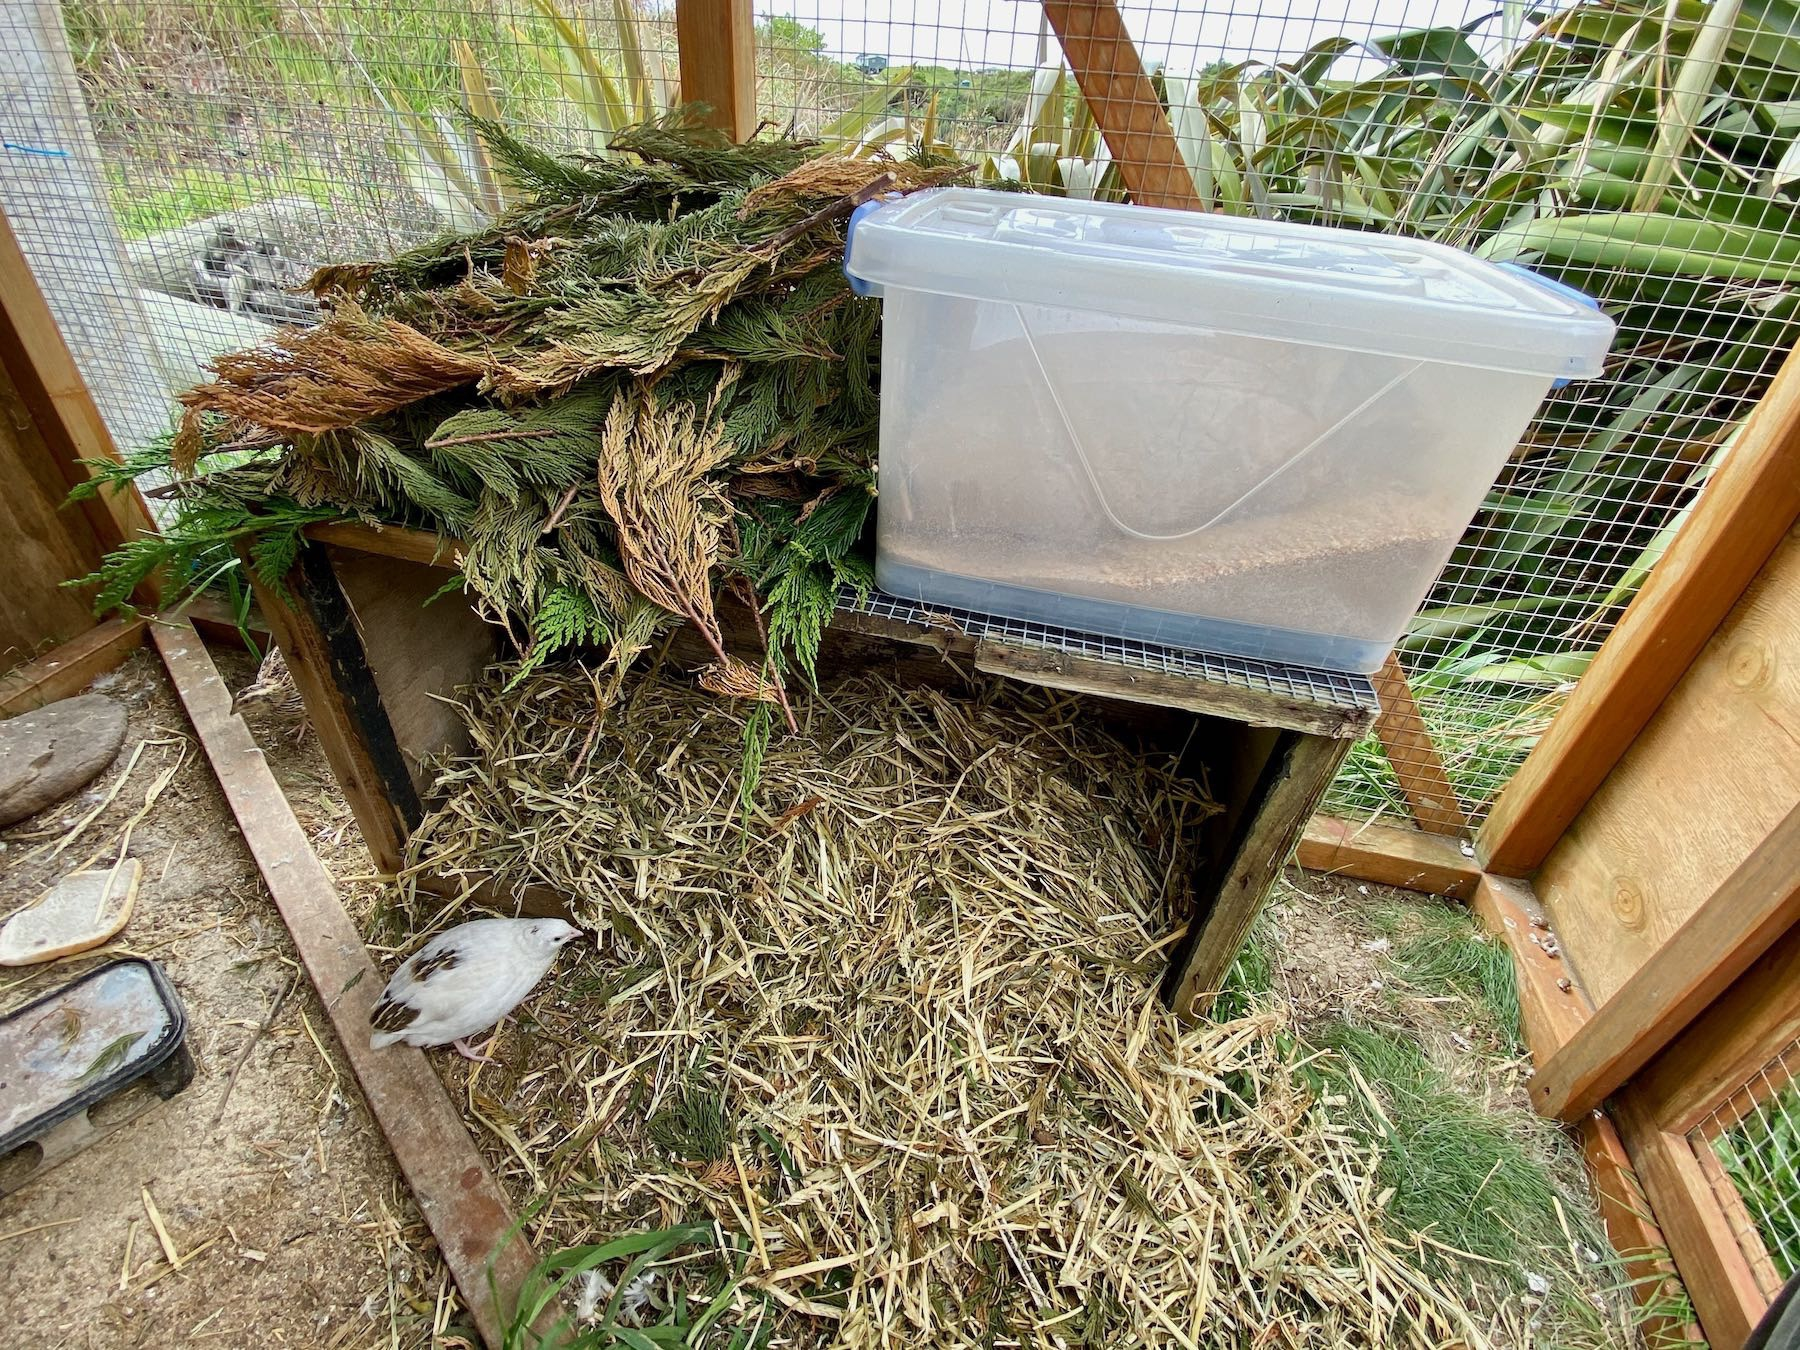 Taller box with straw inside and macrocarpa twigs on top, also a white plastic box of food on top.